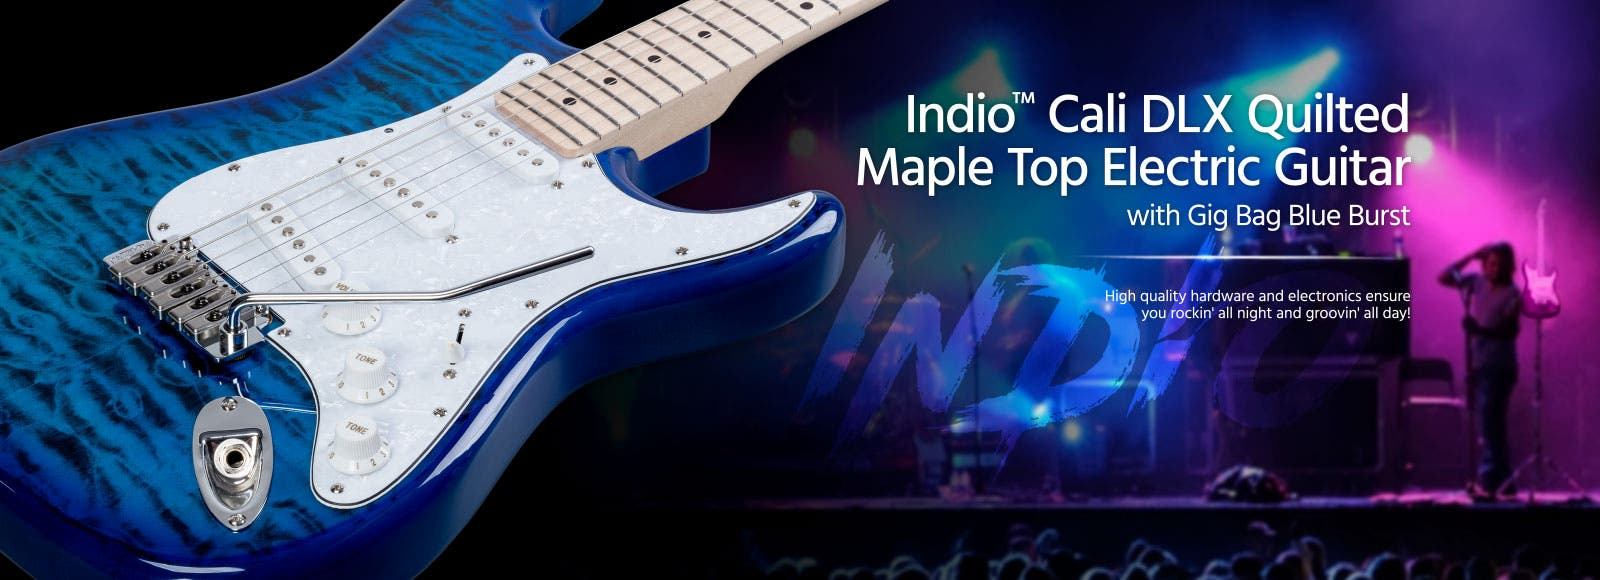 Indio Cali DLX Quilted Maple Top Electric Guitar